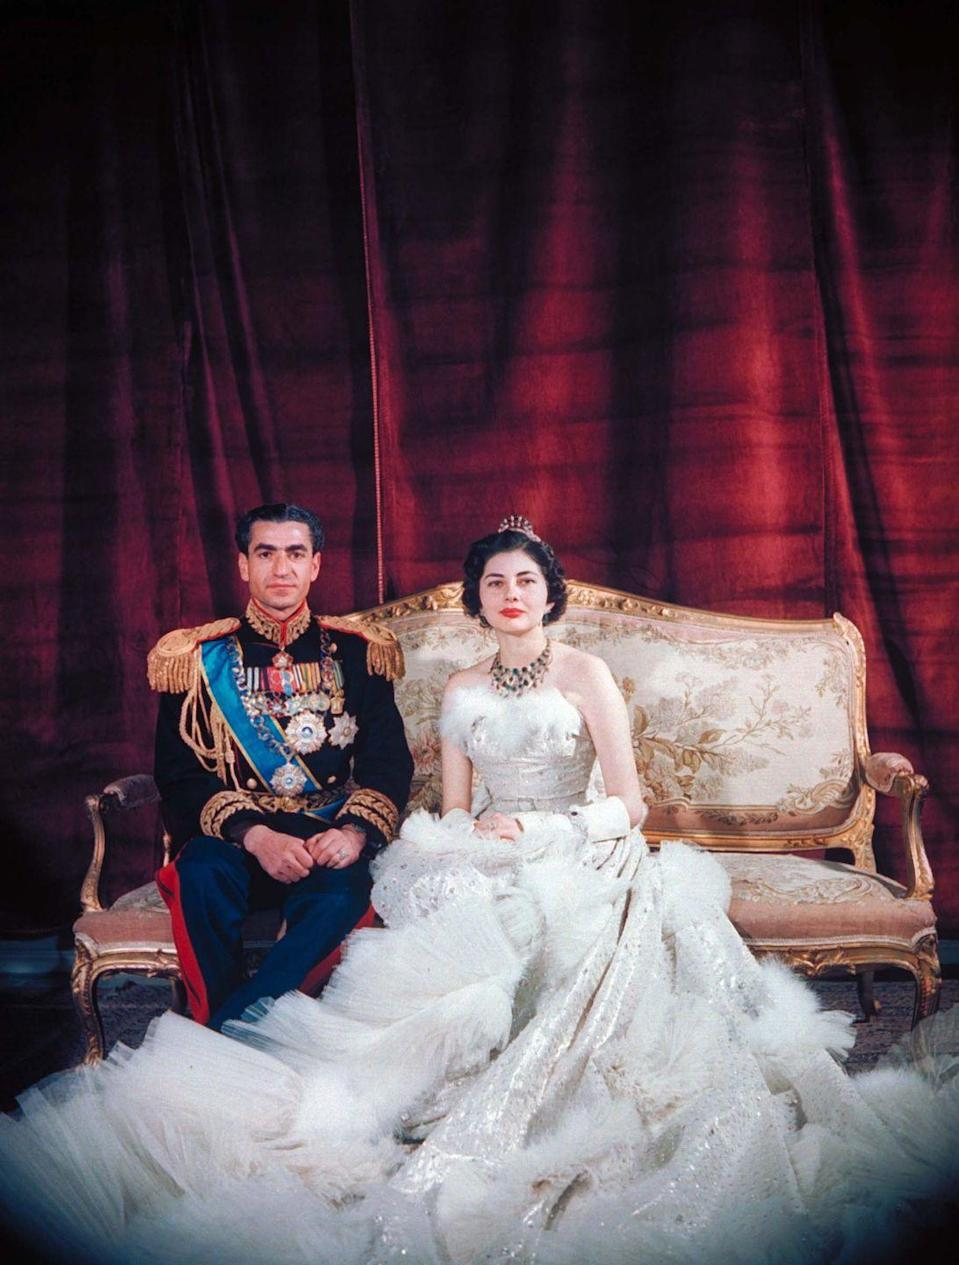 <p>Queen Soraya of Iran married Shah Mohammad Reza Pahlavi on February 12, 1951 and Marble Palace in Tehran. She wore a 44-pound strapless dress made of 37 yards of silver lamé, studded with pearls, 6,000 diamond pieces, and 20,000 marabou feathers.</p>